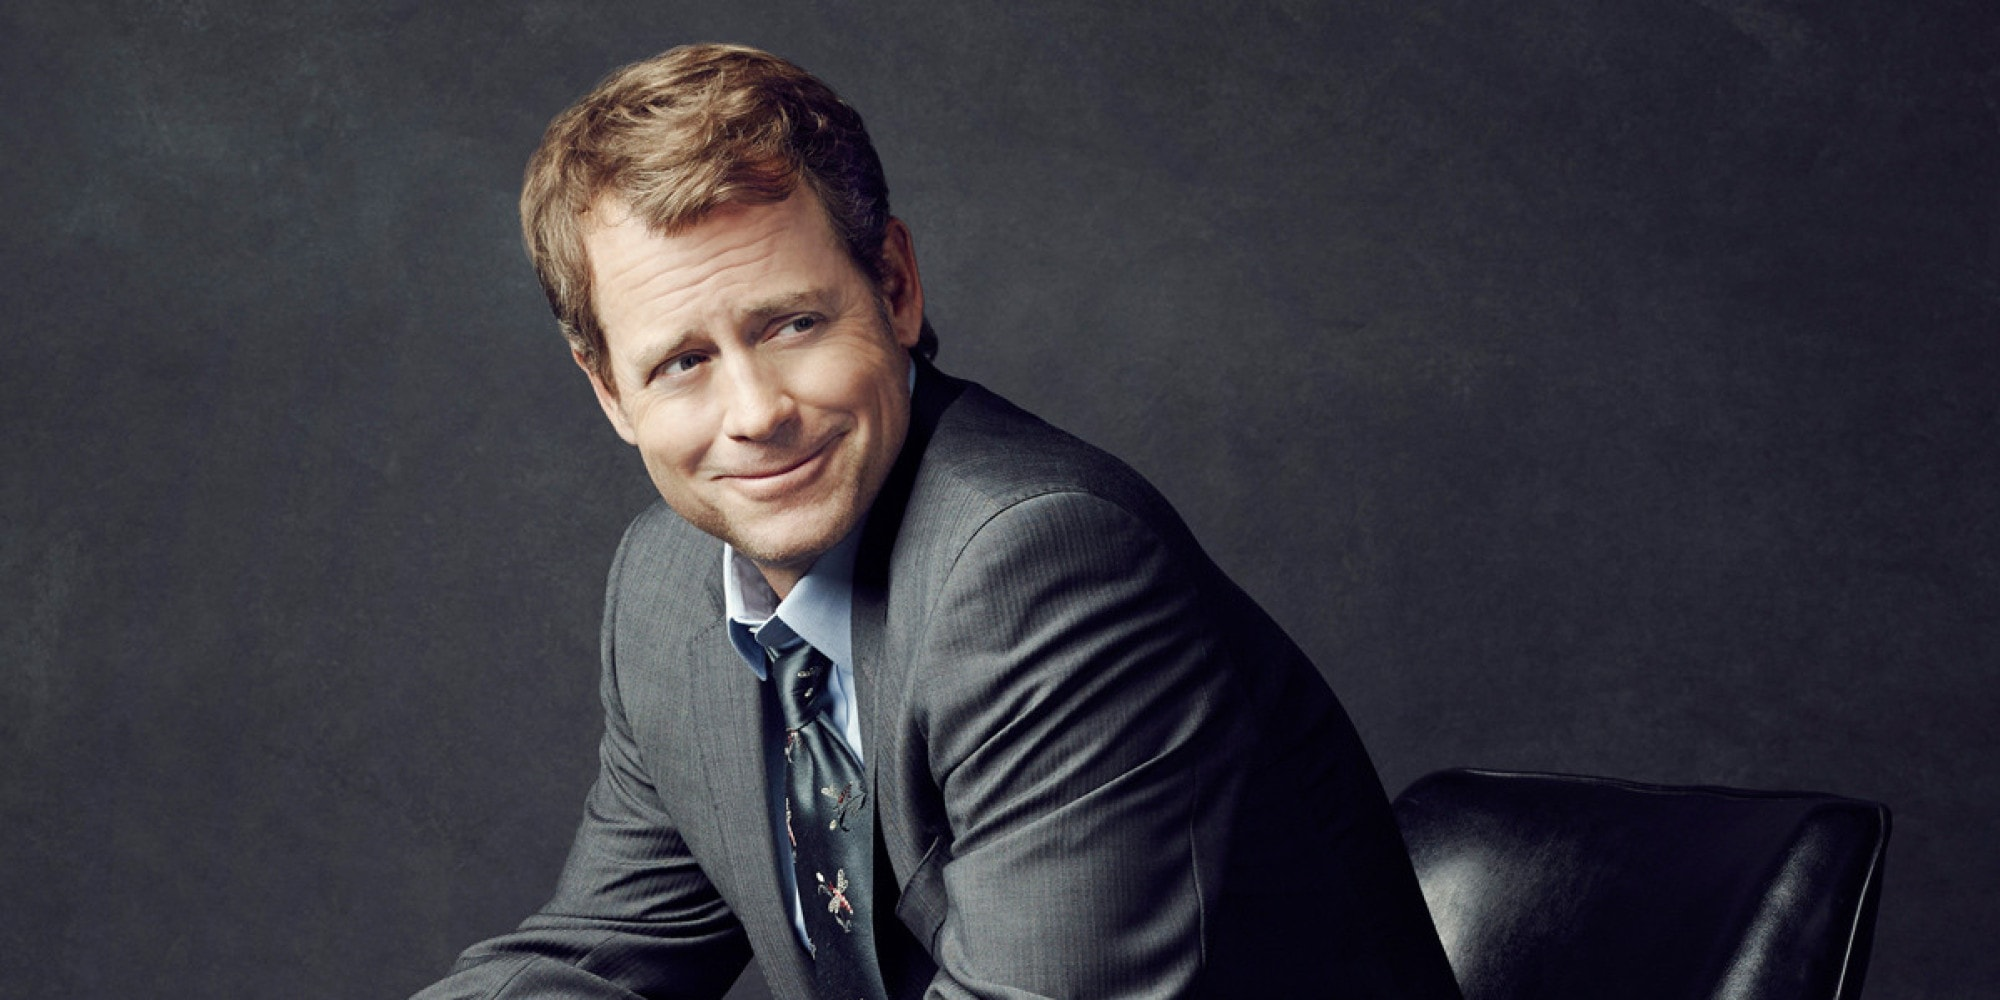 Greg Kinnear Background